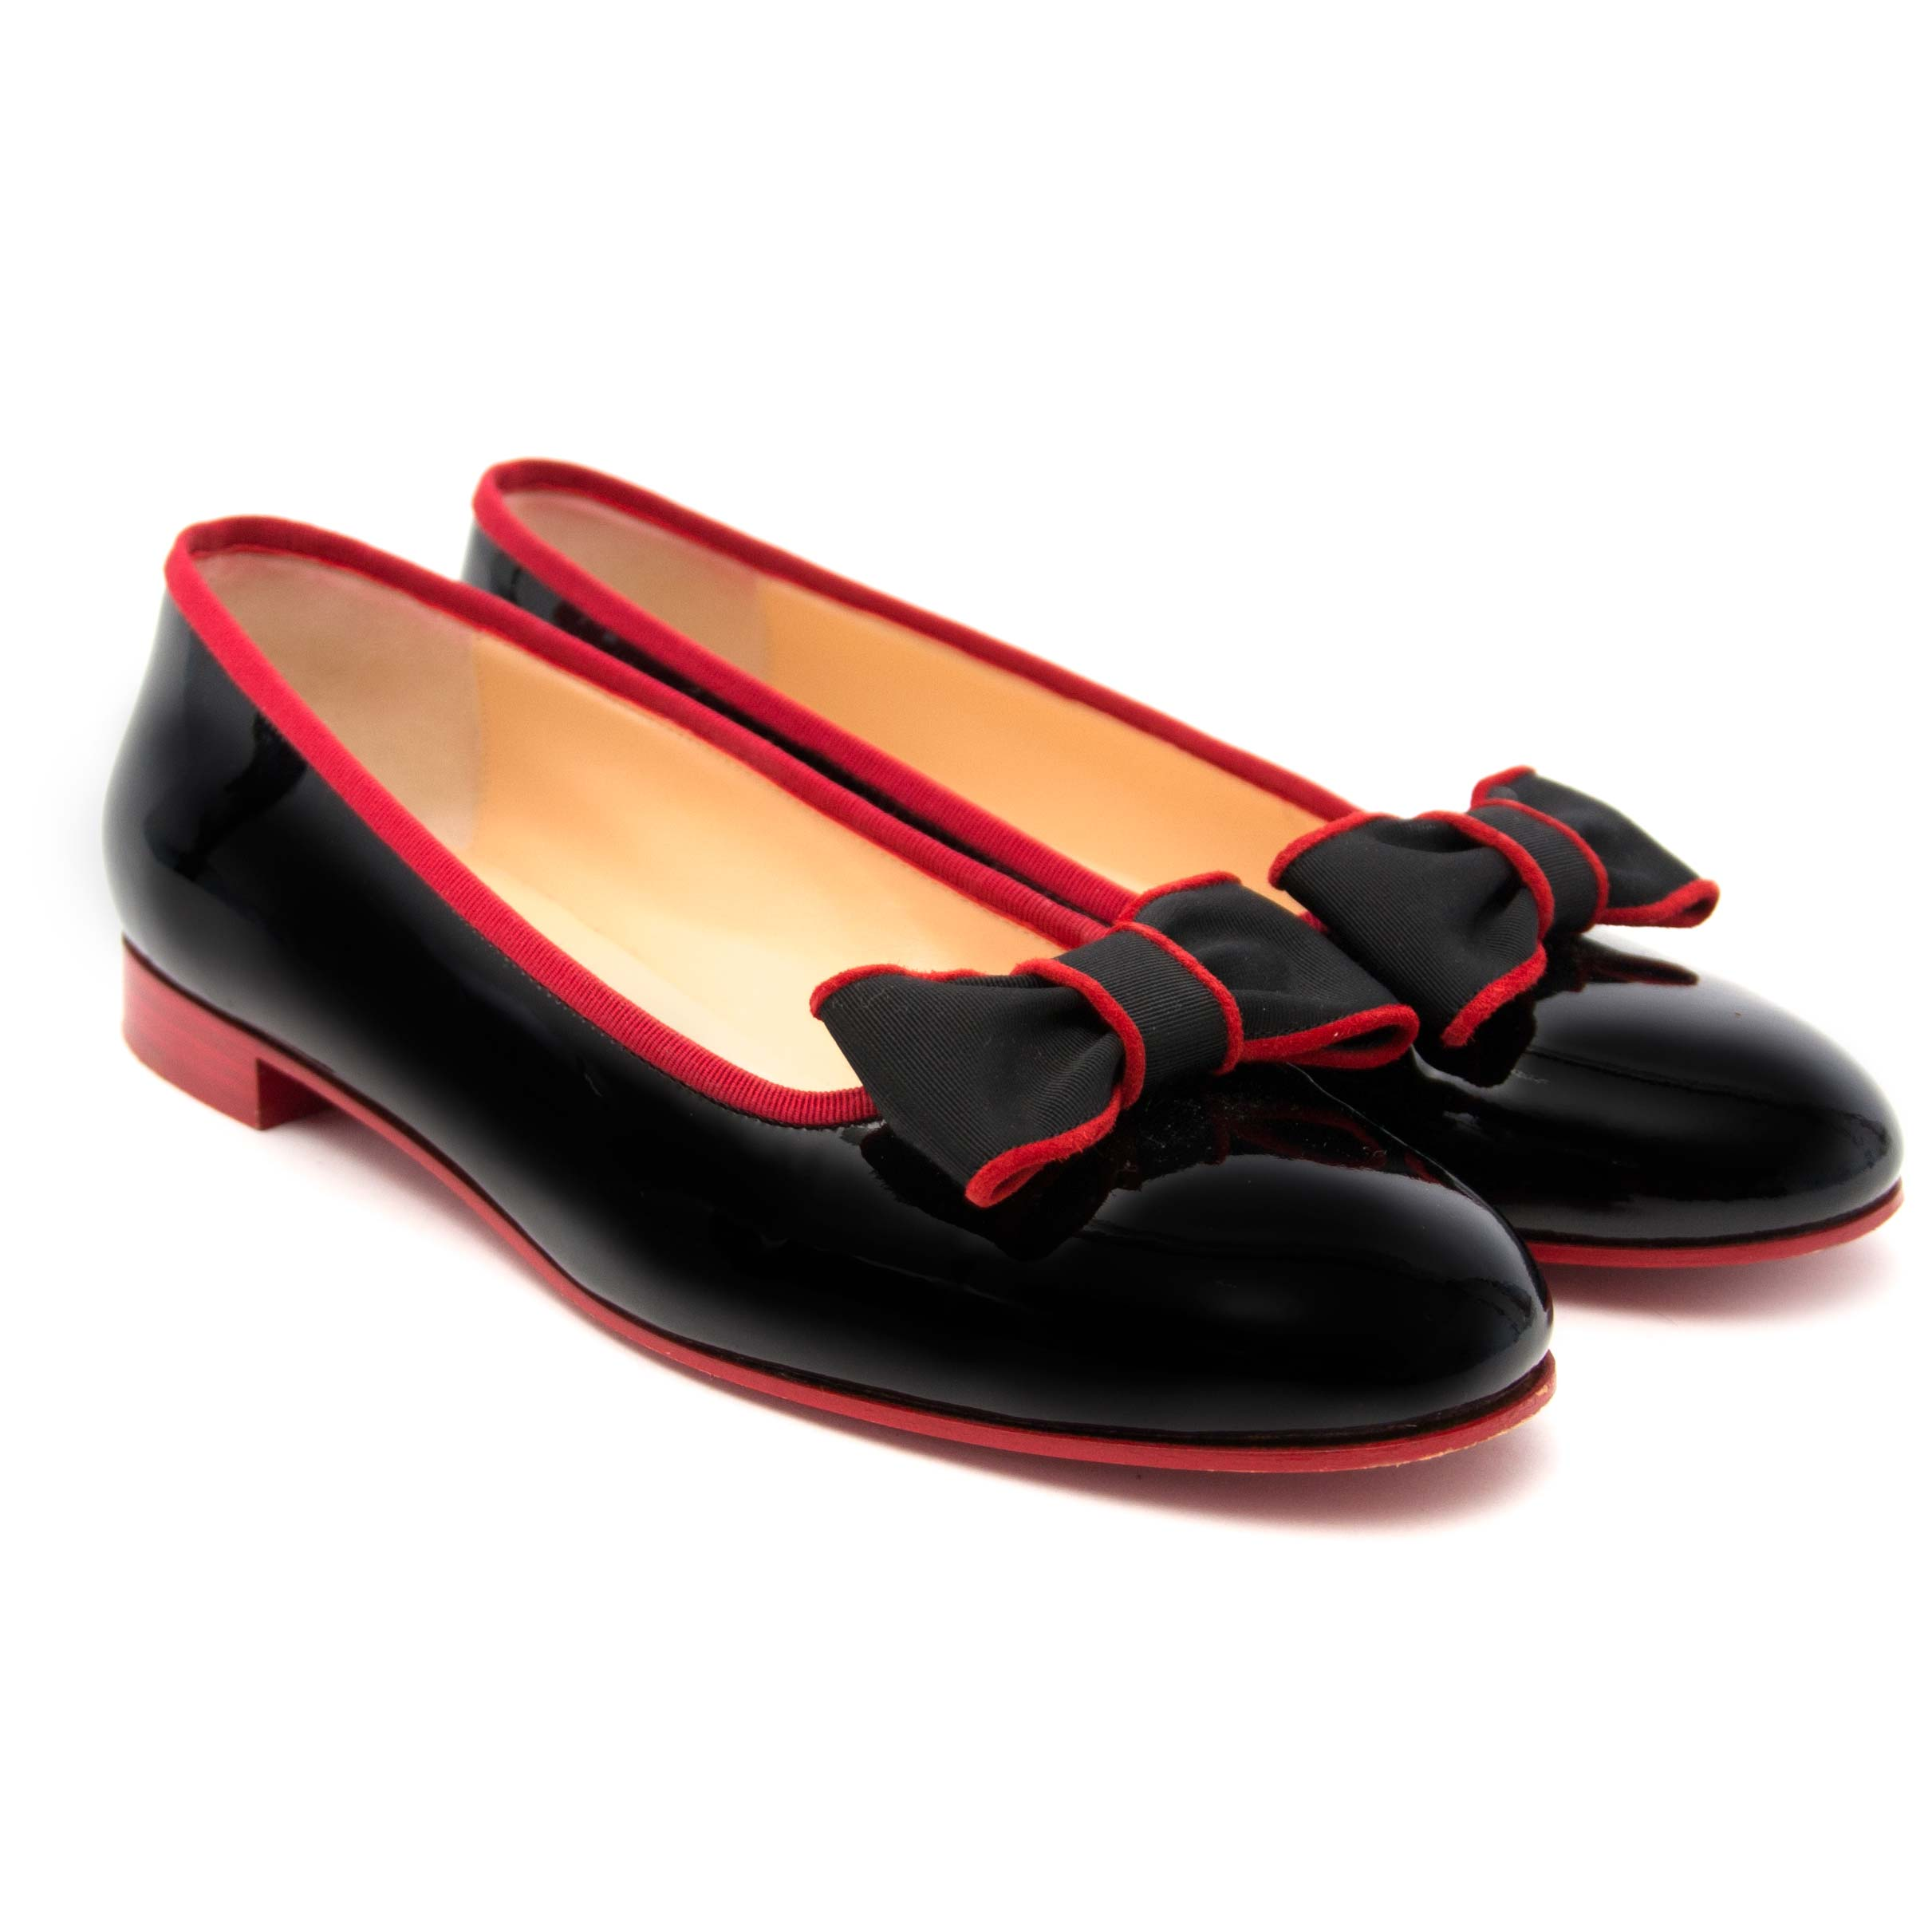 shop safe online at the best price Louboutin Black and Red Ballet Flats - Size 40